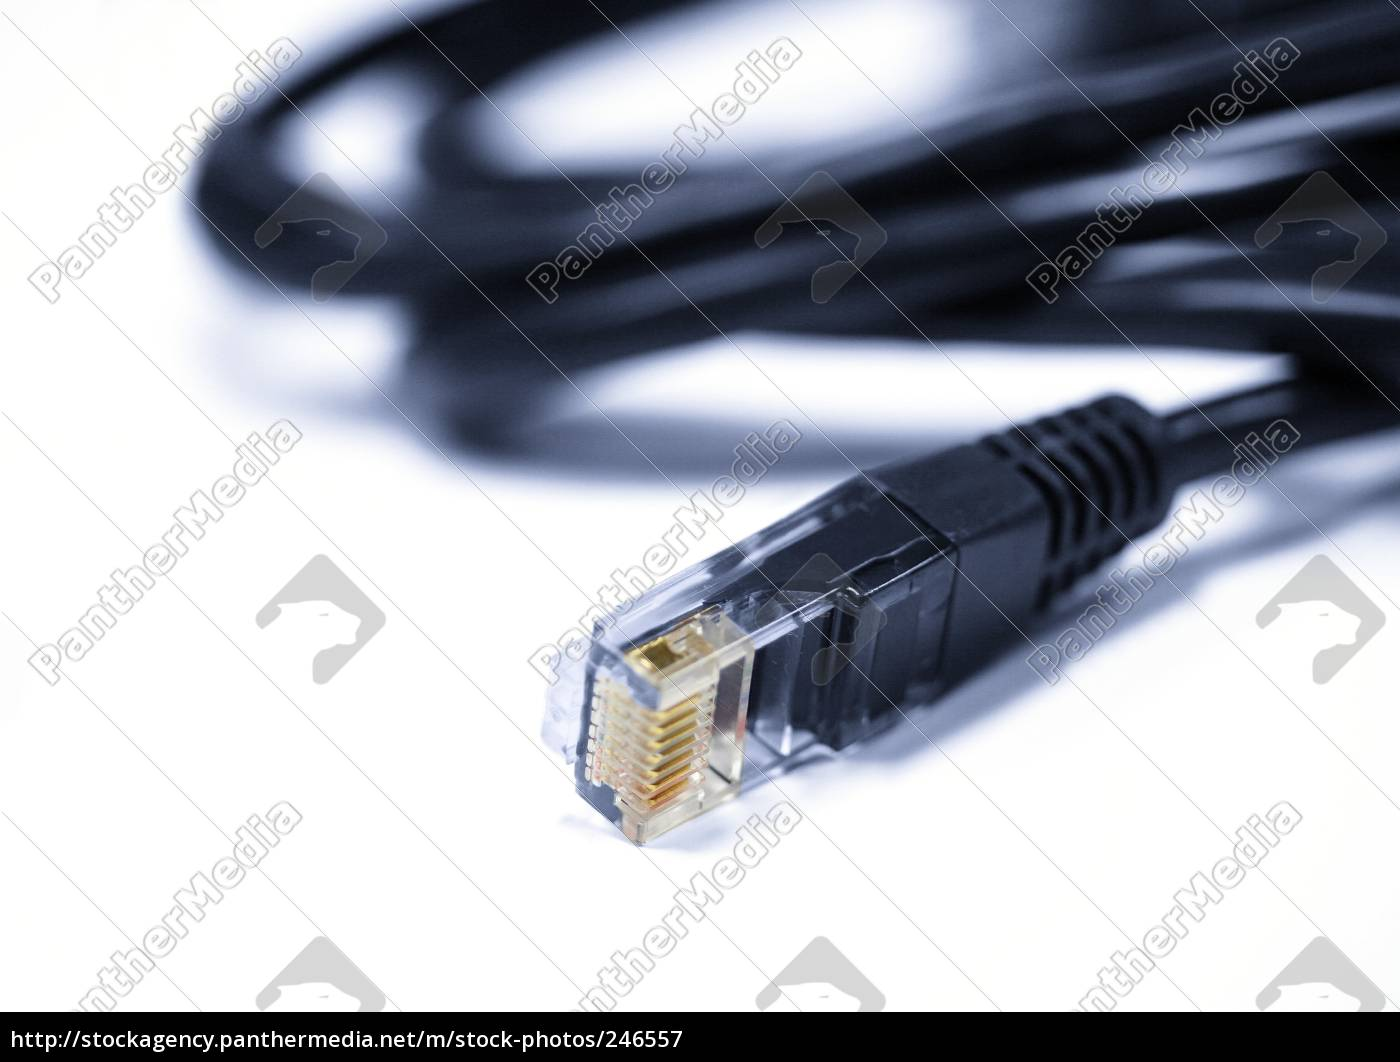 network, cables - 246557